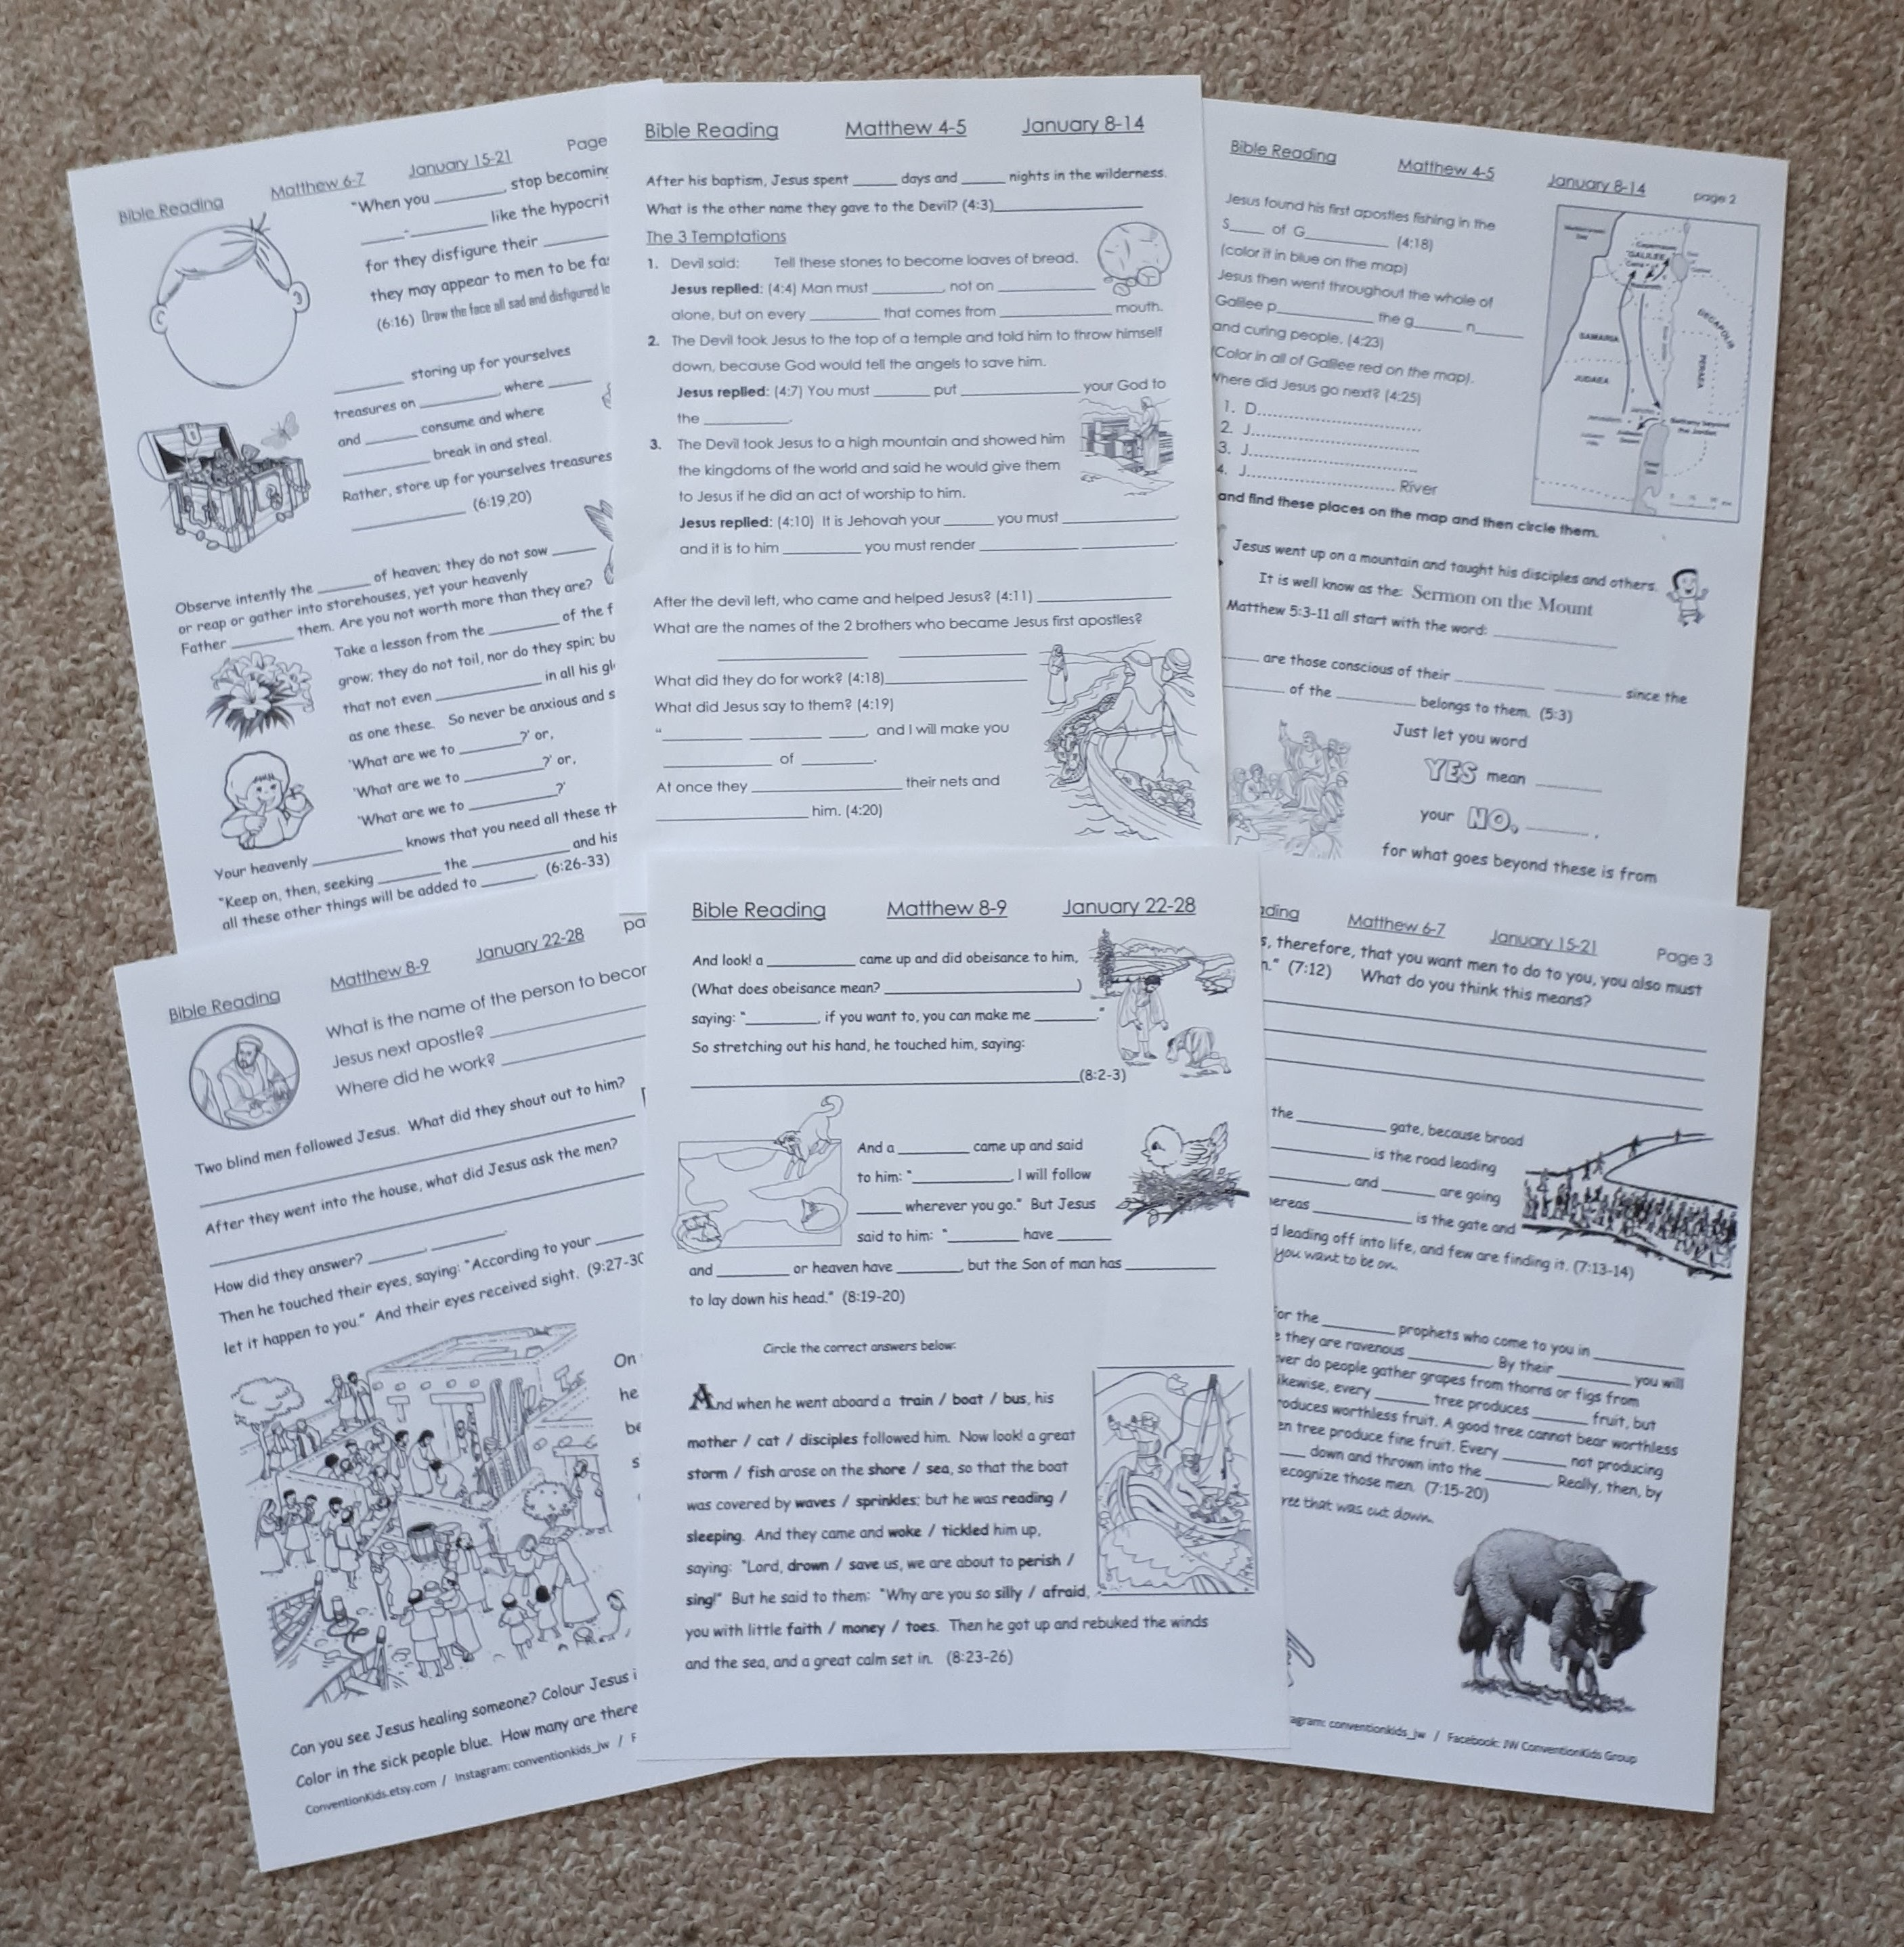 Weekly Bible Reading Worksheets for Children in Spanish   English     Add